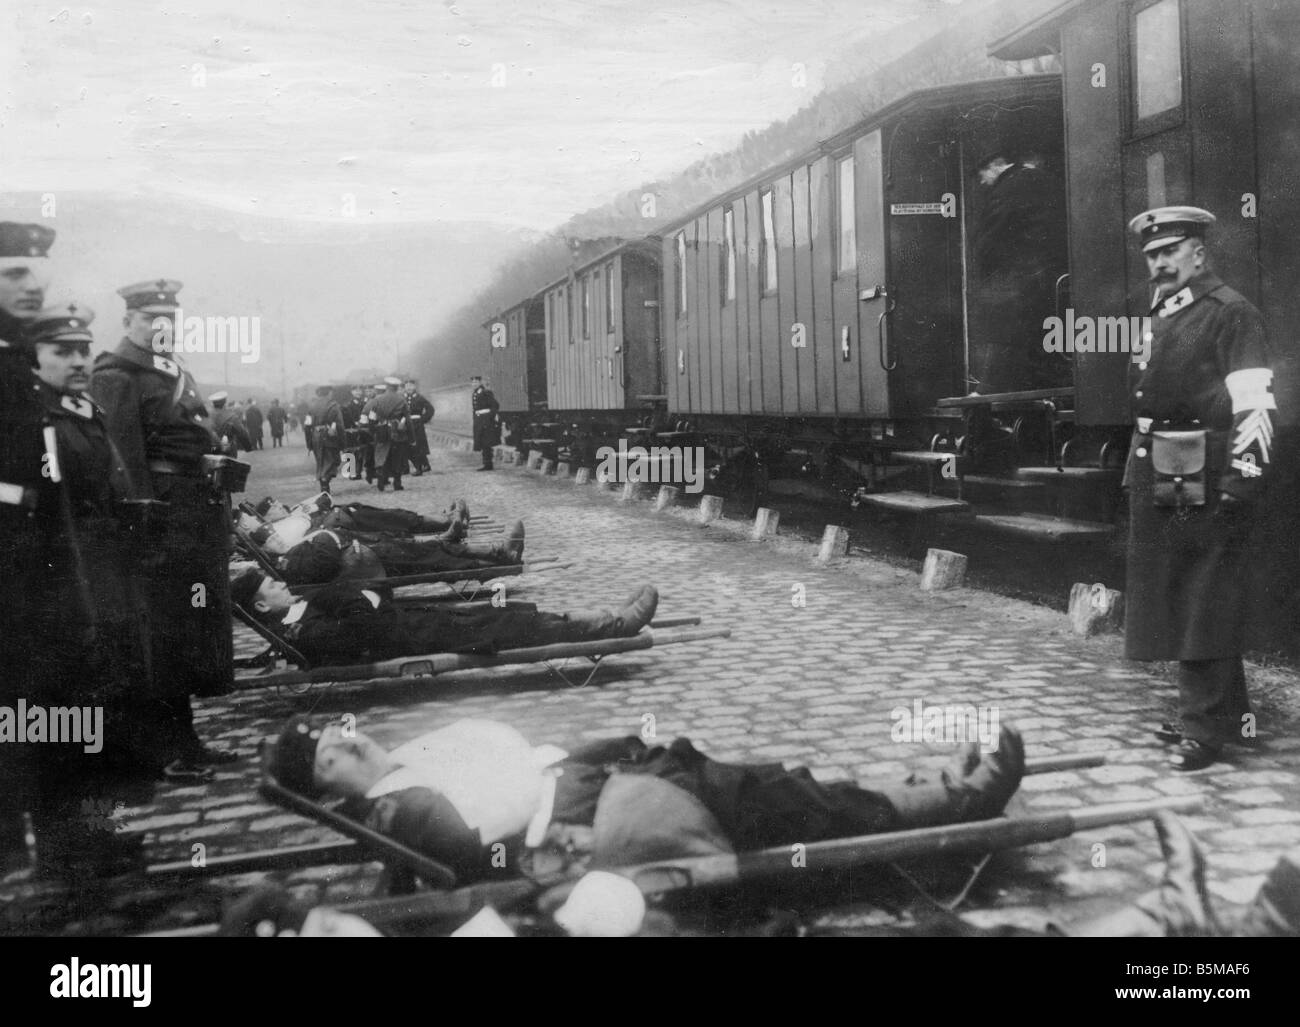 2 G55 W1 1918 21 Transport of German wounded WWI 1918 History World War I Western Front Transport of wounded German - Stock Image